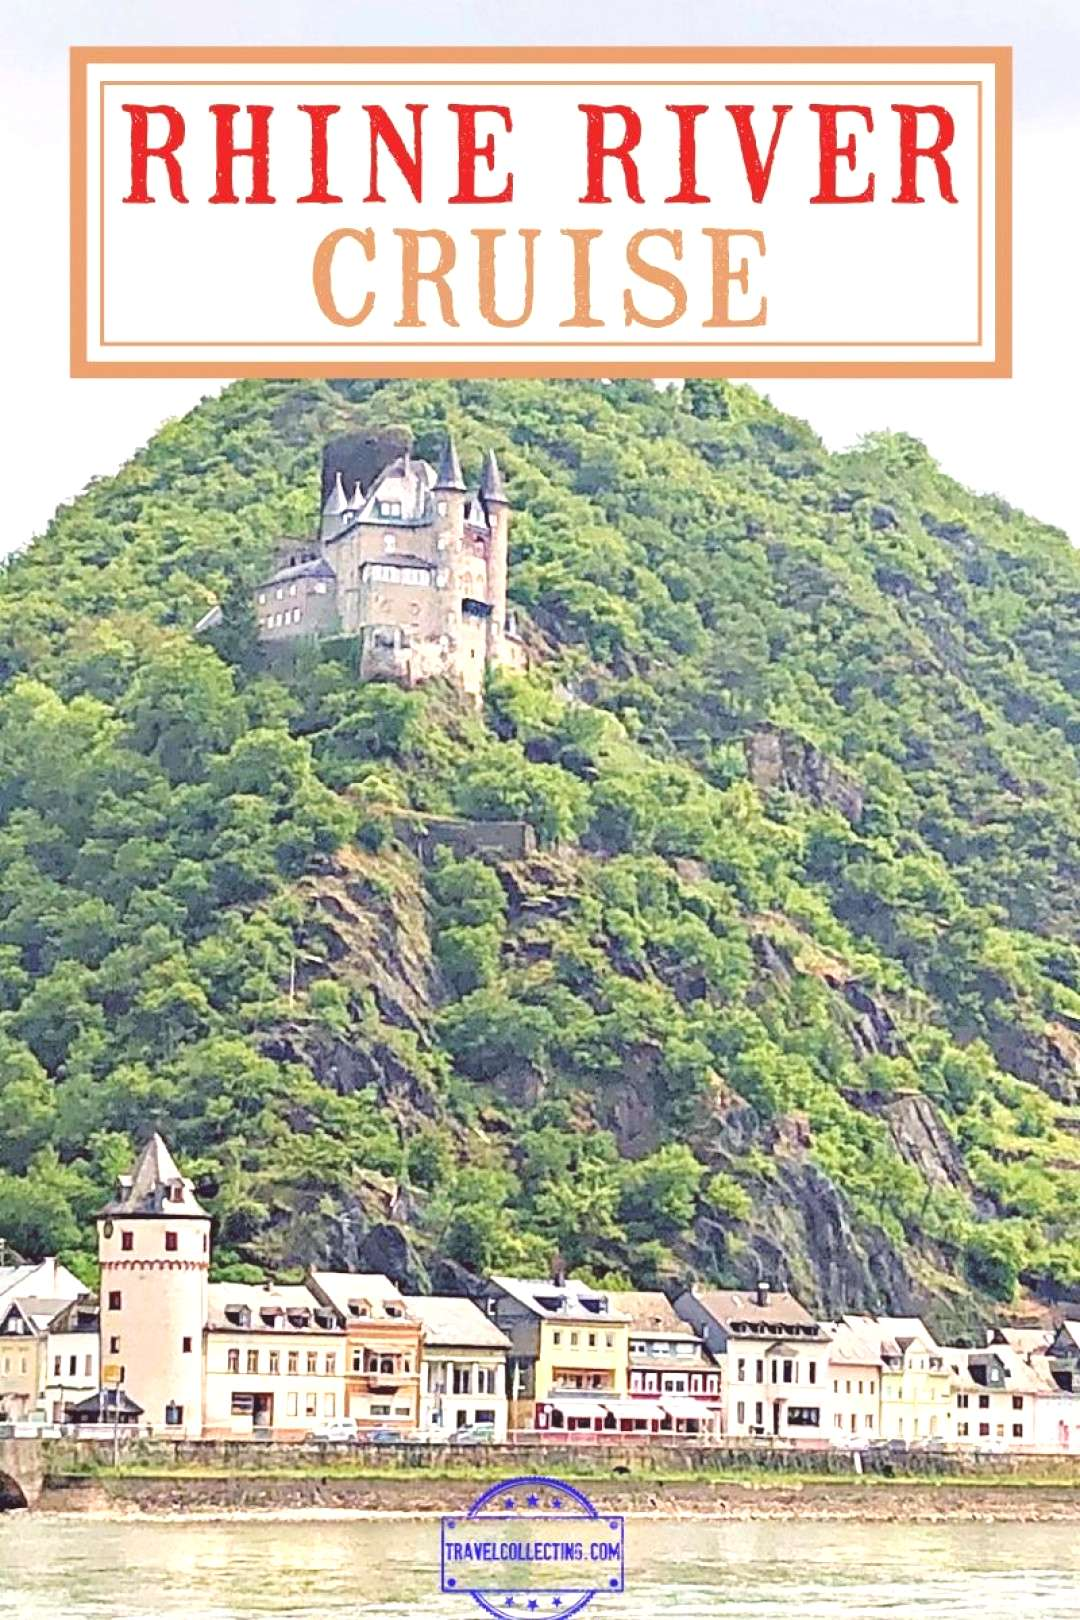 Rhine River Cruise Castles amp Villages The Rhine River, Germany is famous for fairytale castles and